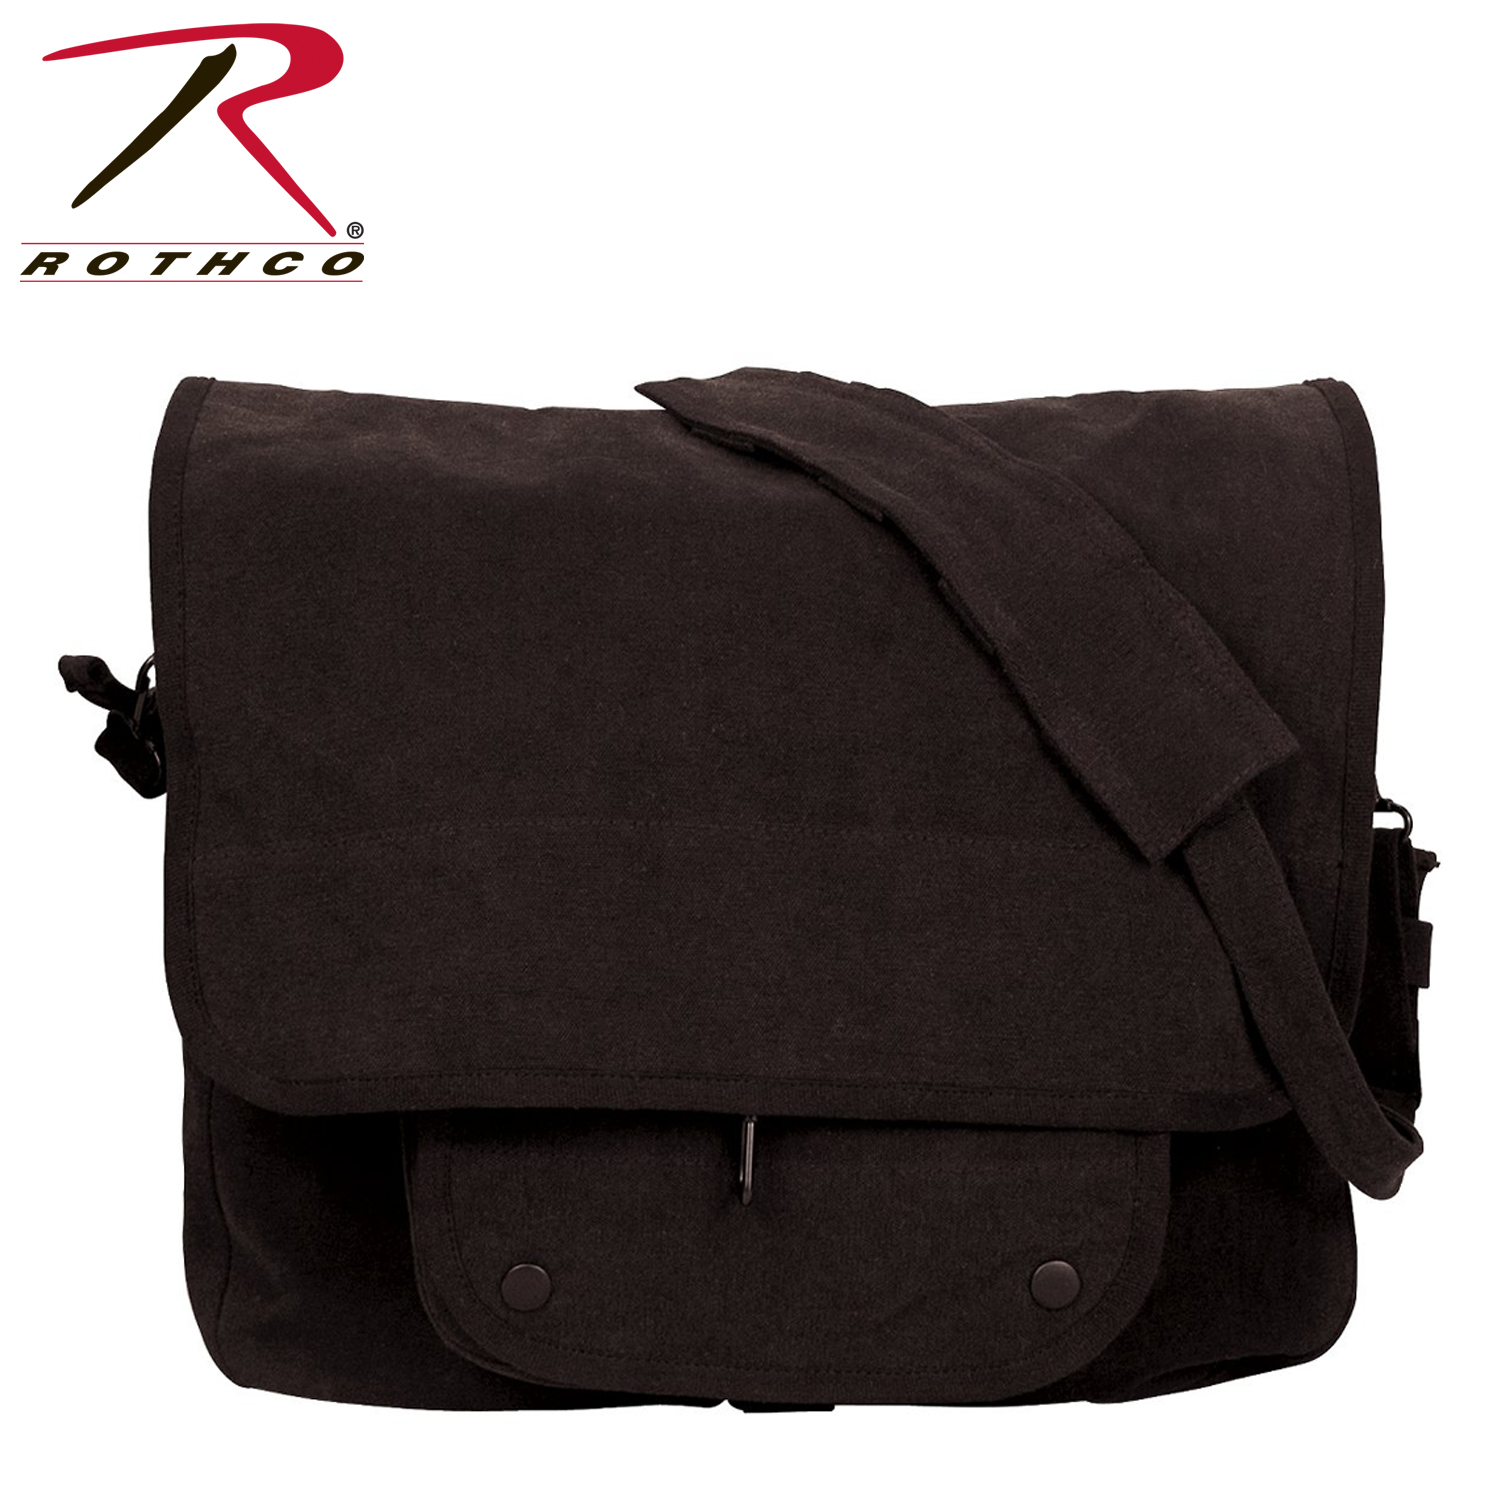 6076ce1f4c Rothco Vintage Canvas Paratrooper Bag